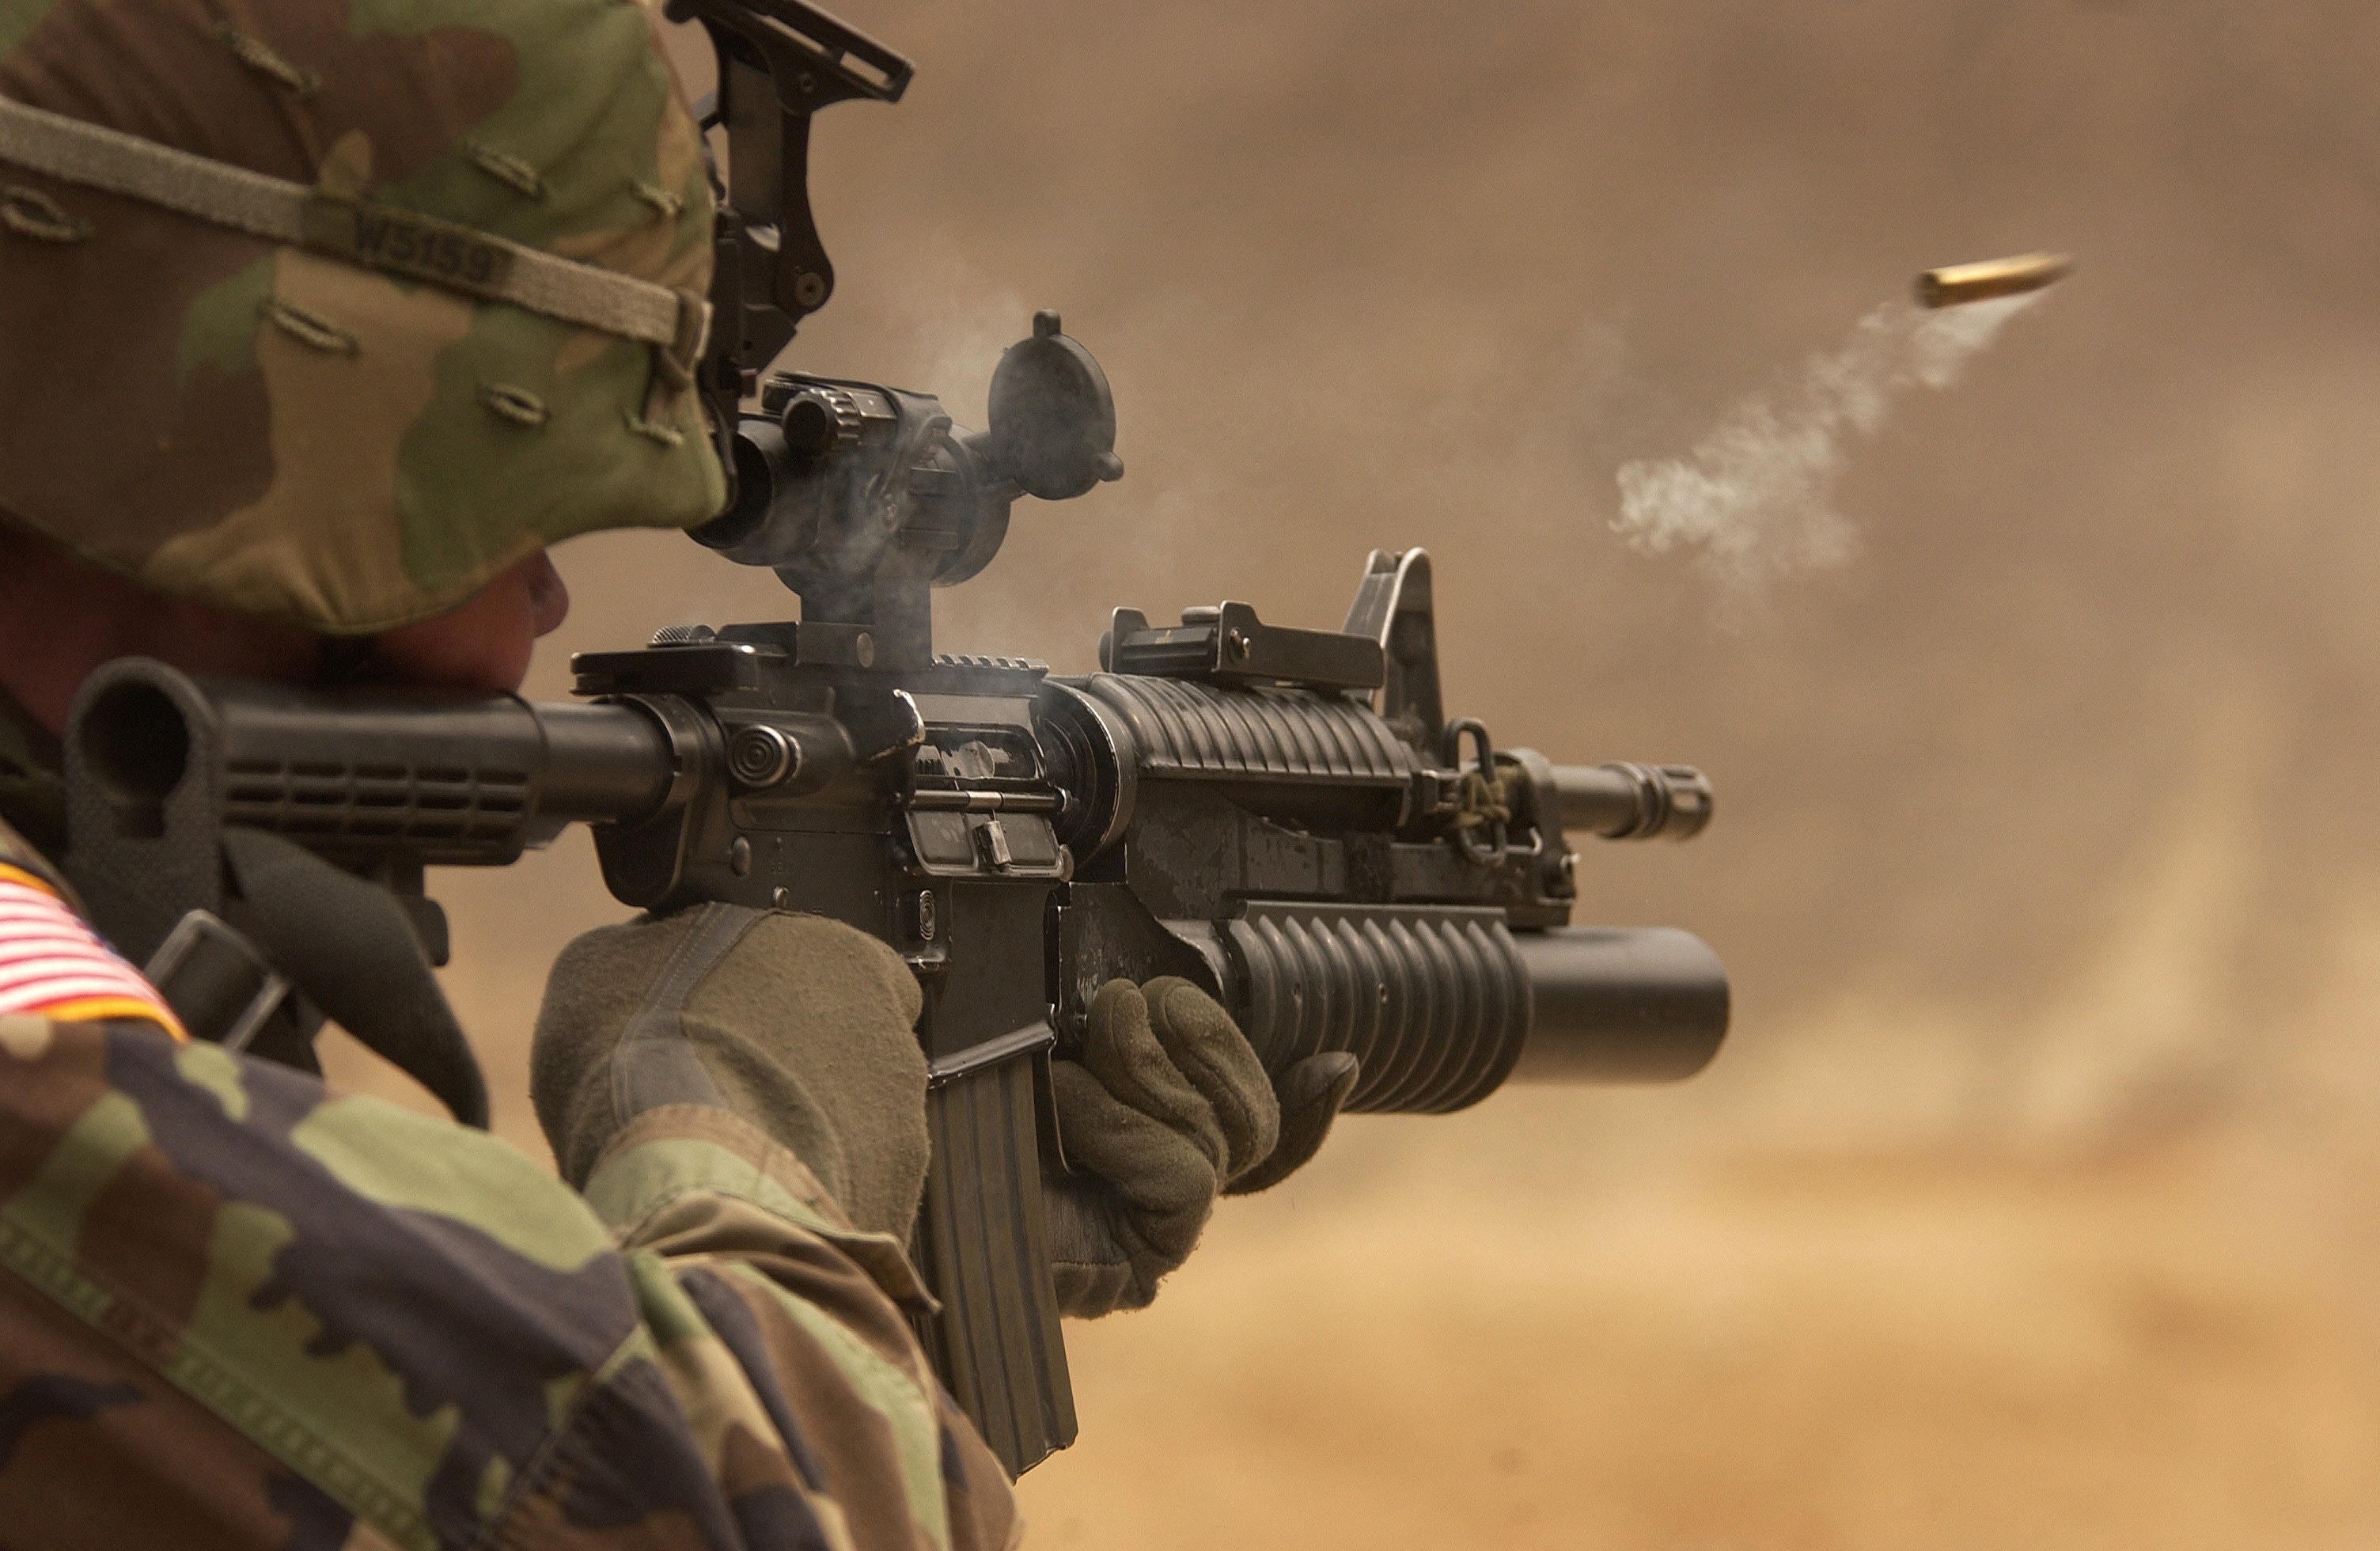 a soldier firing a firearm with attached scope